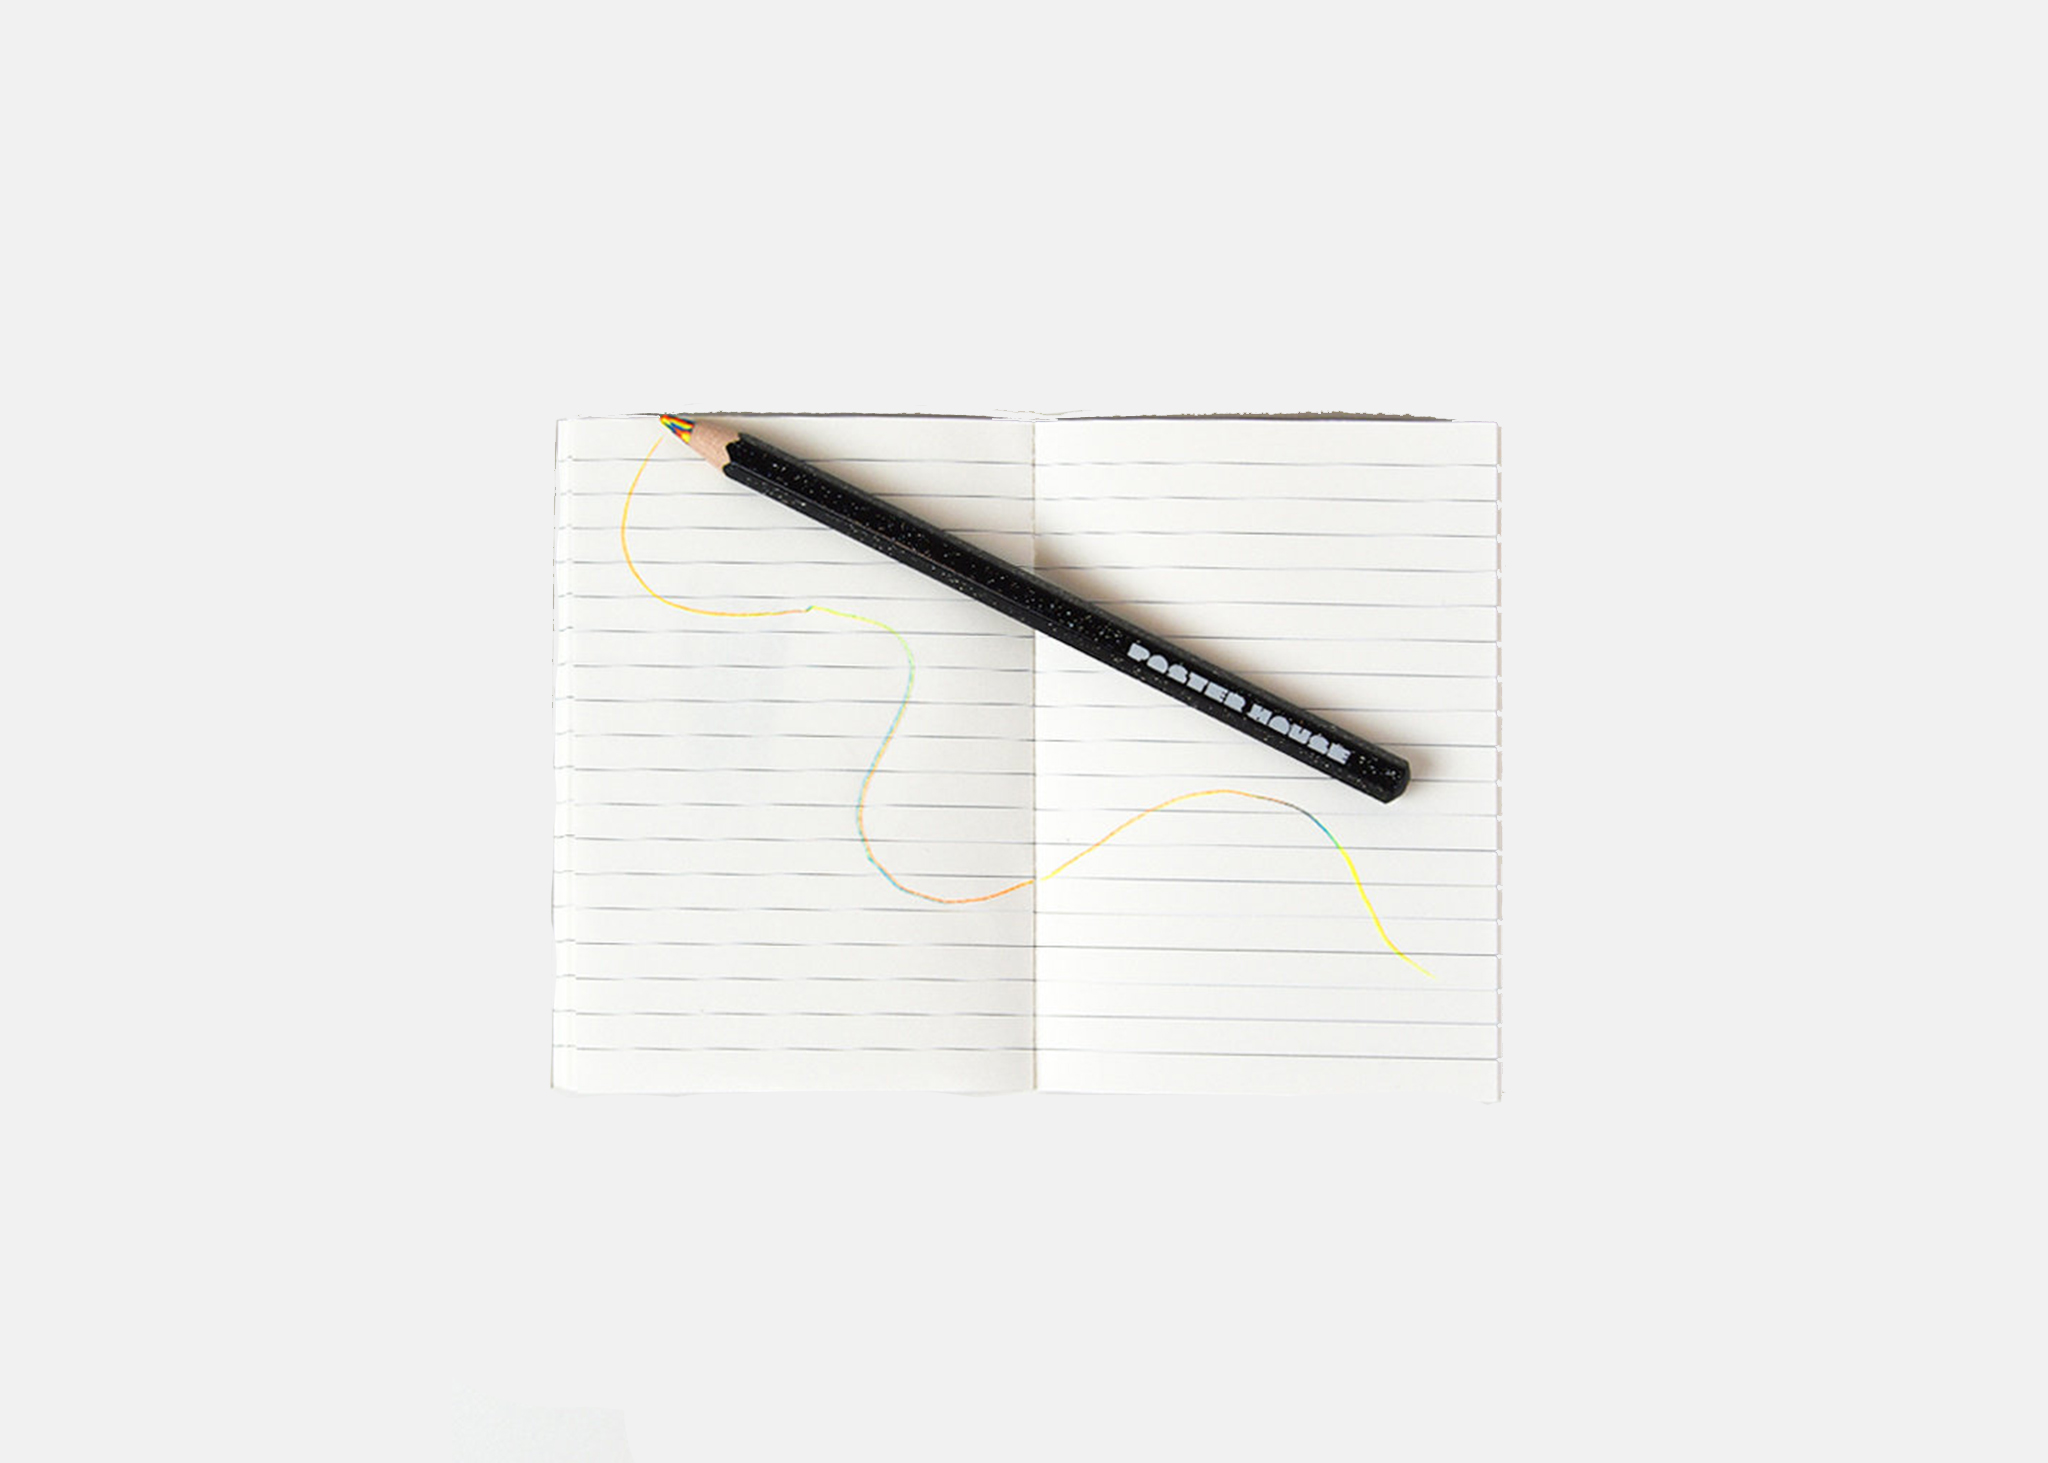 an image of a notebook and the magic pencil scribbled on it